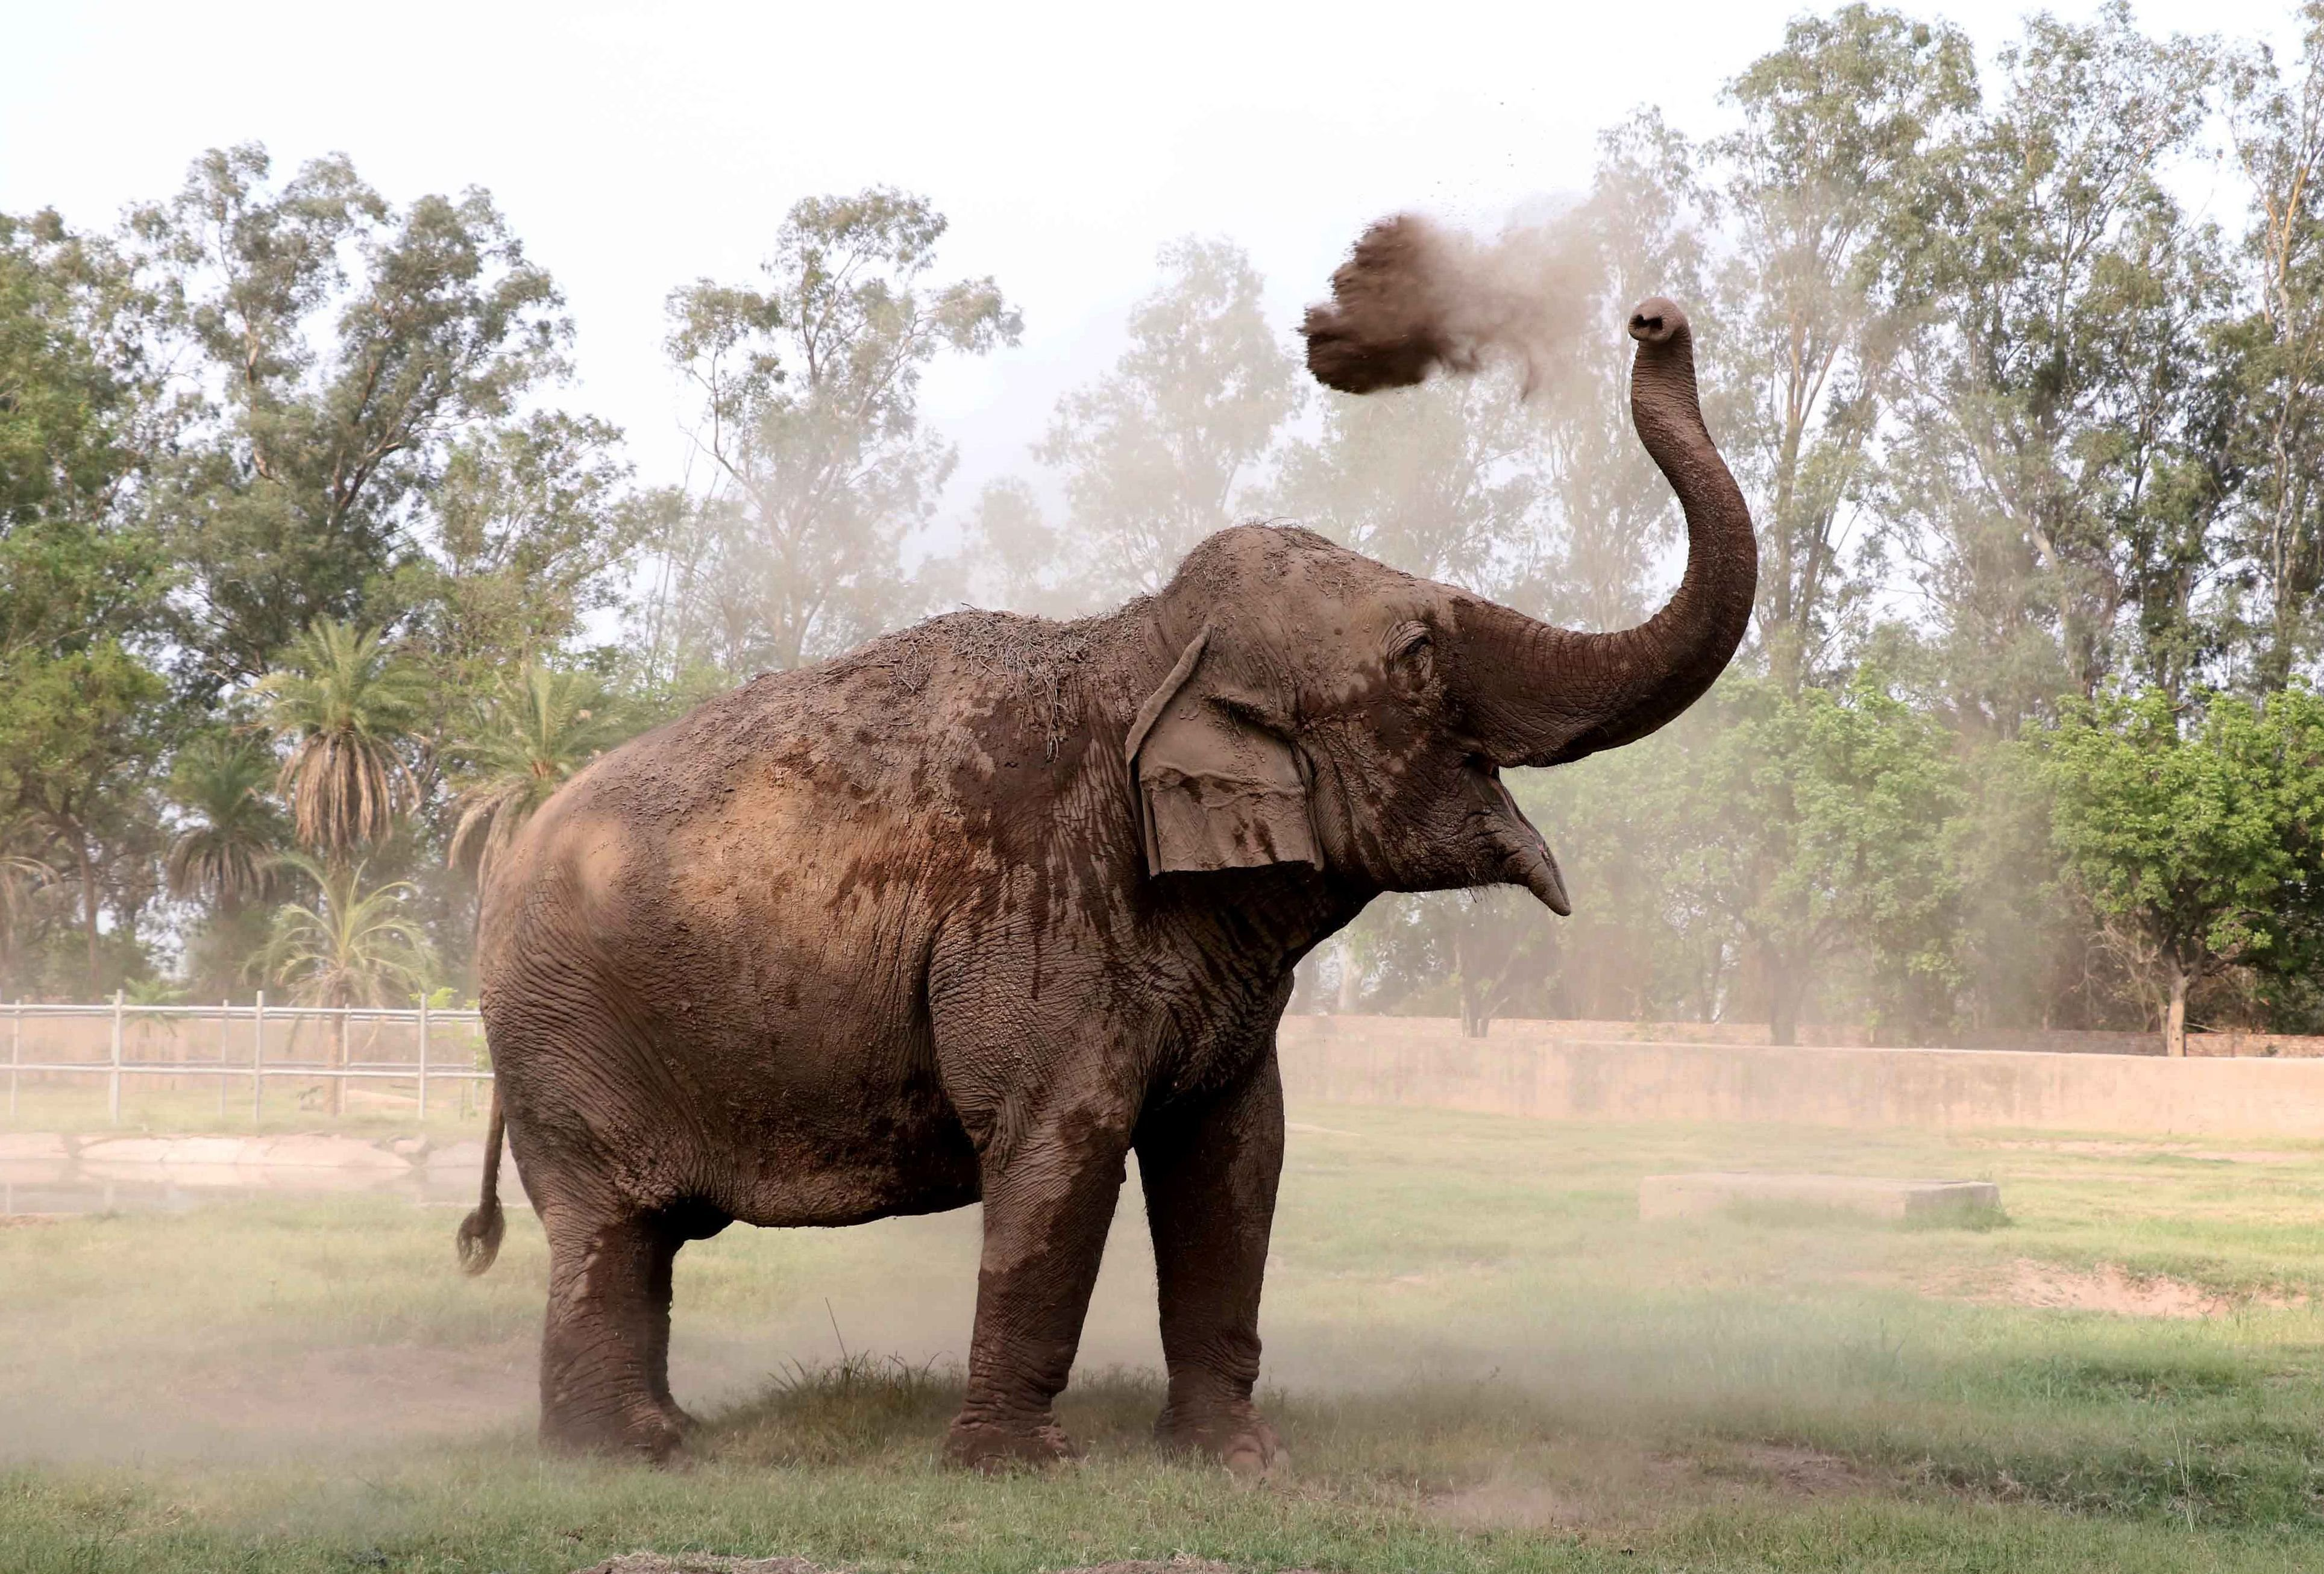 An Indian elephant takes a dust bath amid rising temperatures at Zirakpur Chattbira Zoo, near Chandigarh, India, on April 18, 2016.